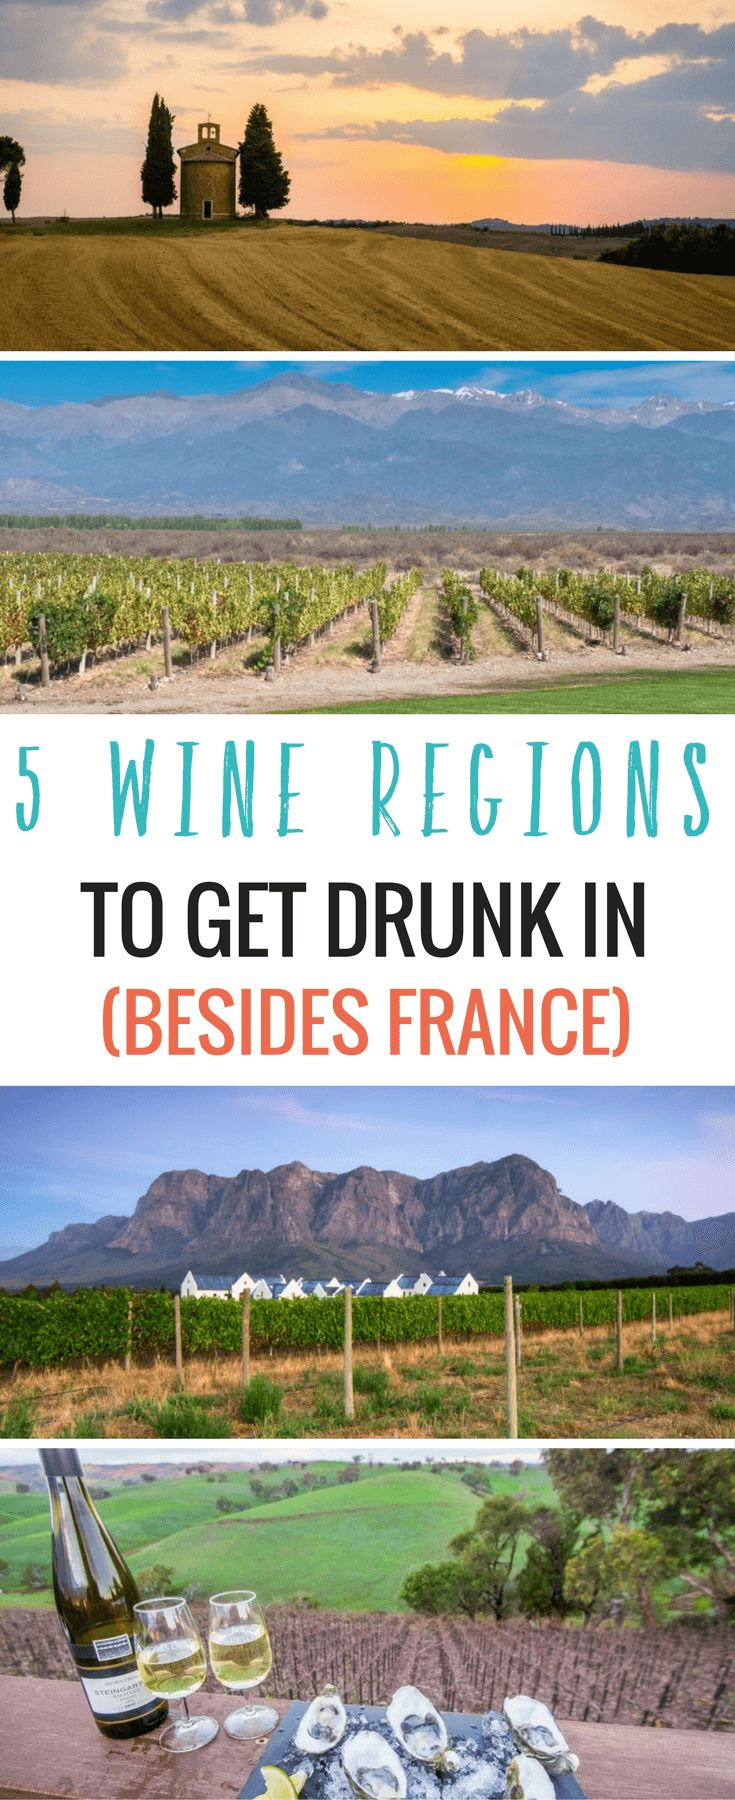 Where's your favorite wine region around the world? Check out these five incredible places to drink wine in the world - Stellenbosch, Barossa Valley, Tuscany and more!